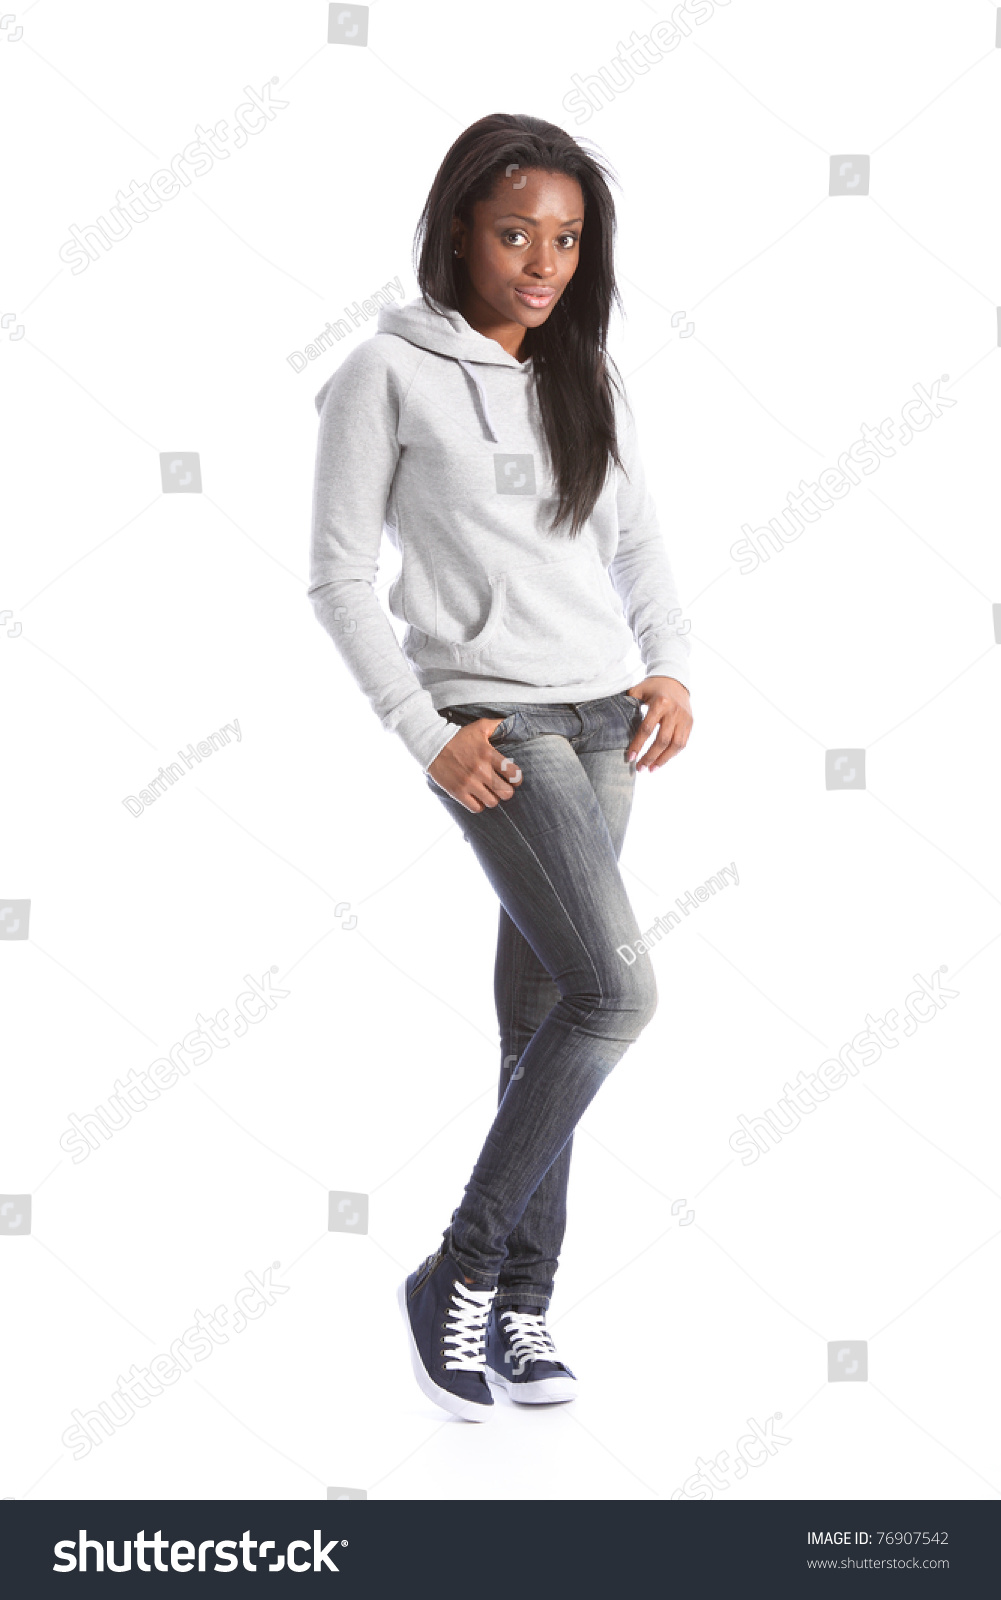 Relaxed standing pose from beautiful young black teenage girl, wearing grey  hoodie sweater and blue